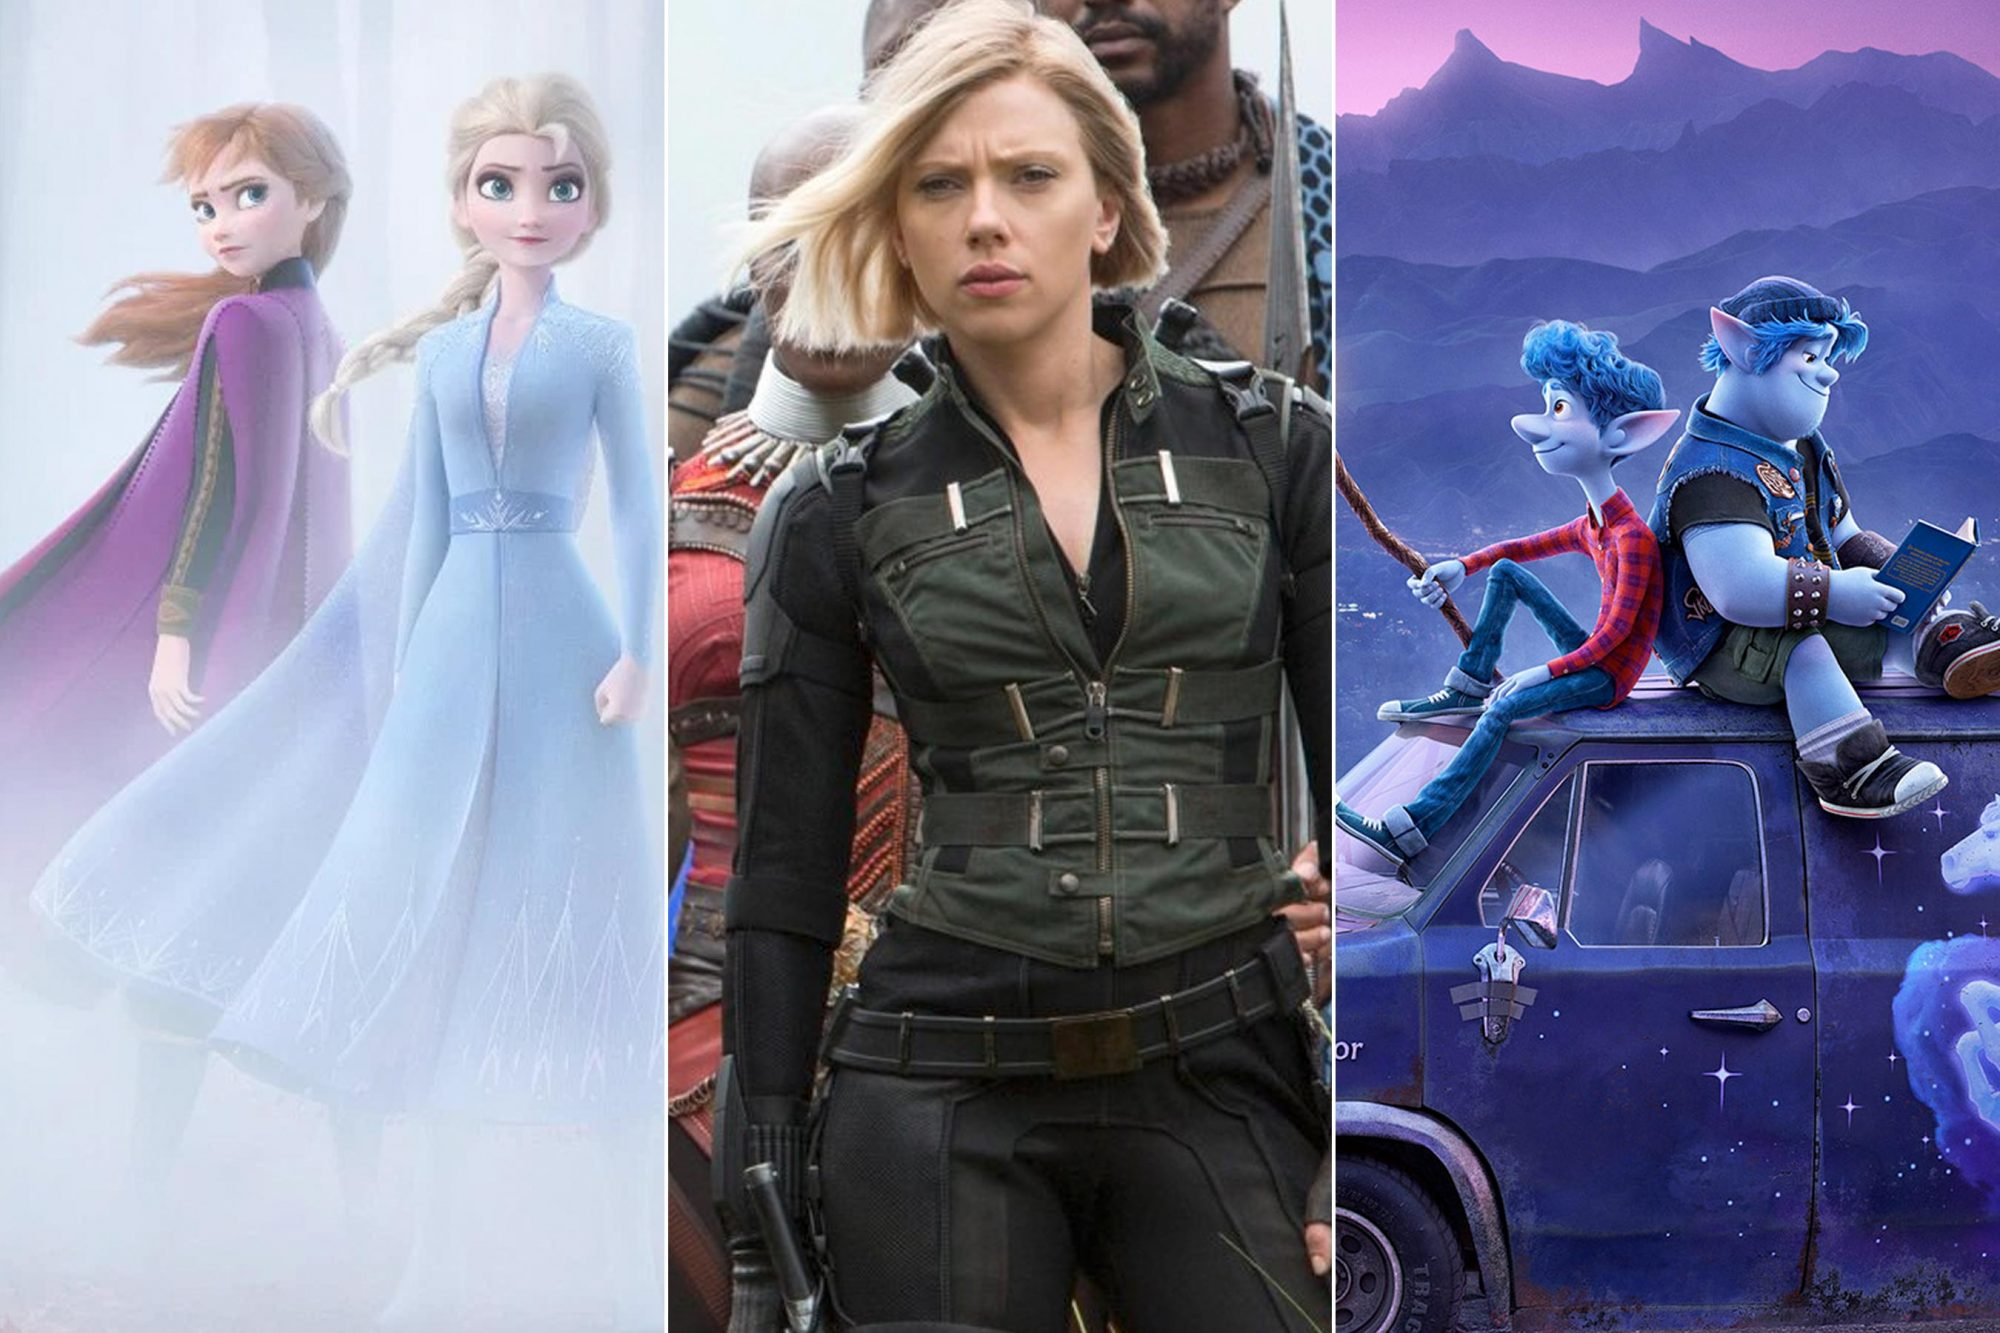 Frozen 2, Black Widow, Onward